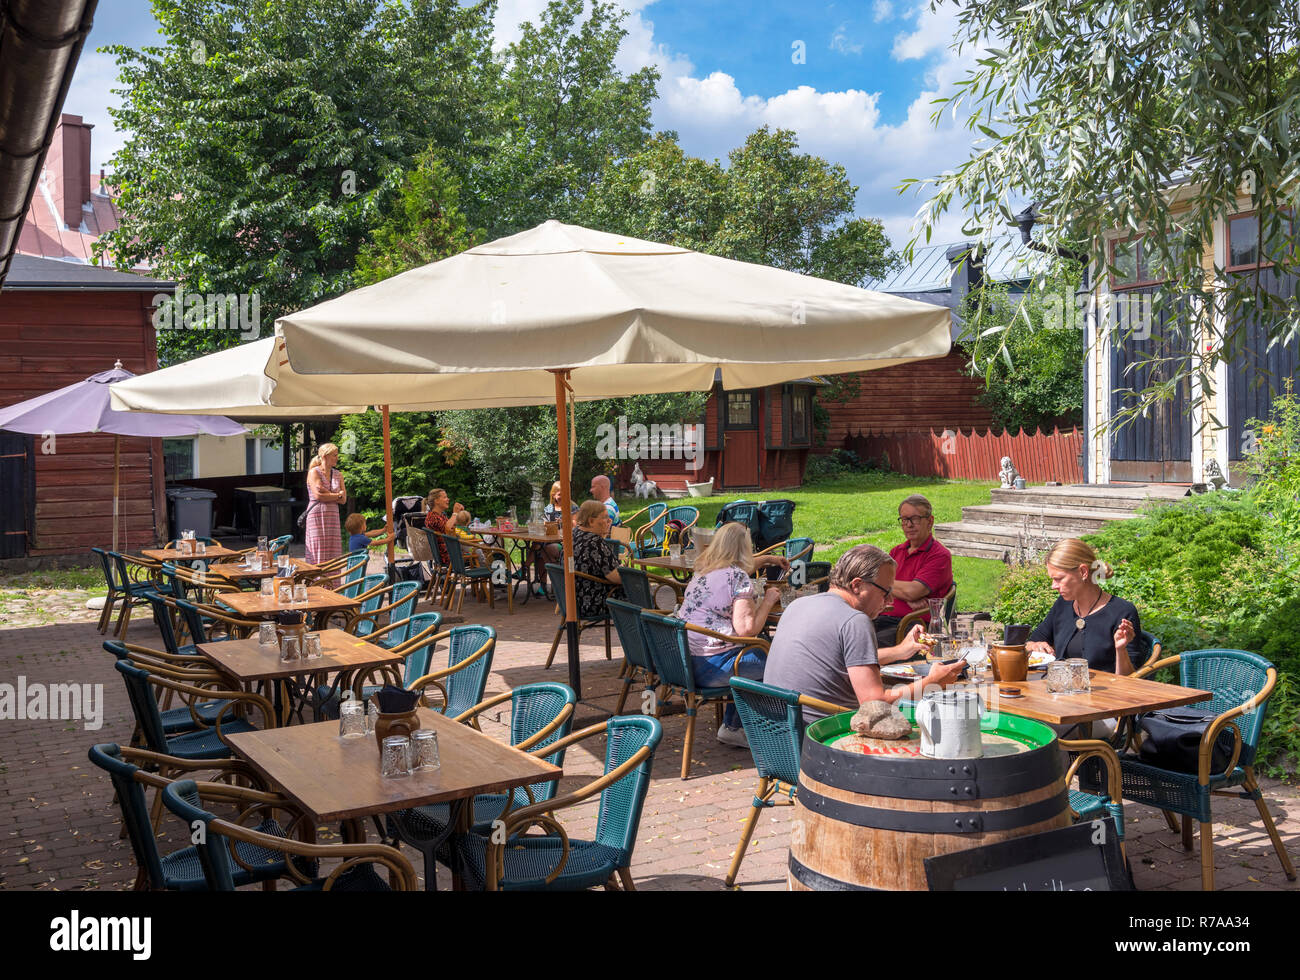 Cafe in the old town, Porvoo, Uusimaa, Finland - Stock Image